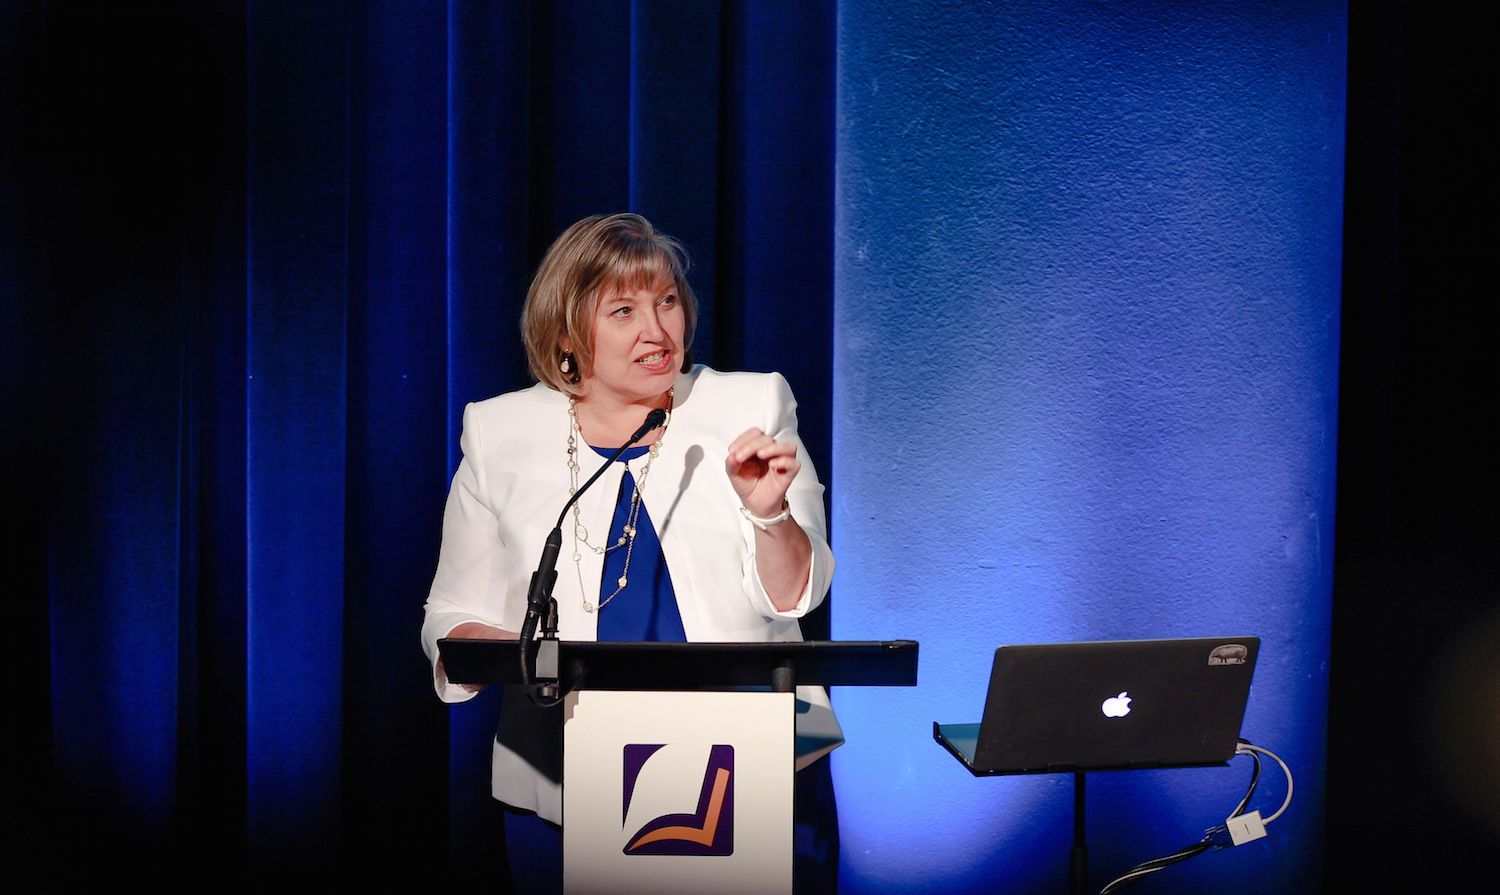 Kenda Creasy Dean at the Payton Lectures